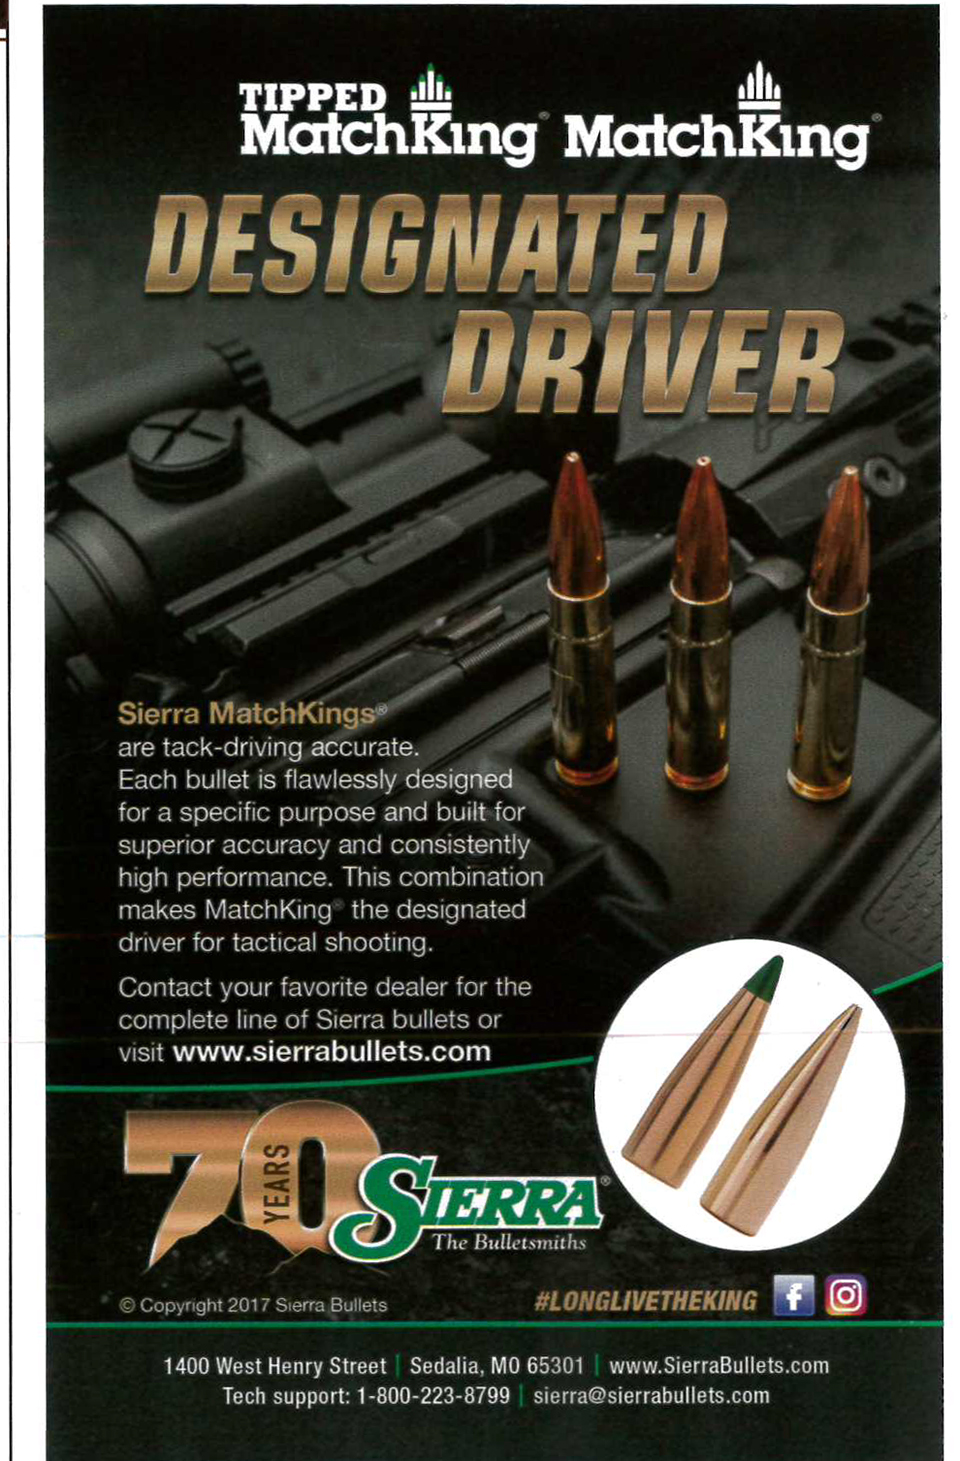 My first print advertisement for a firearms company...